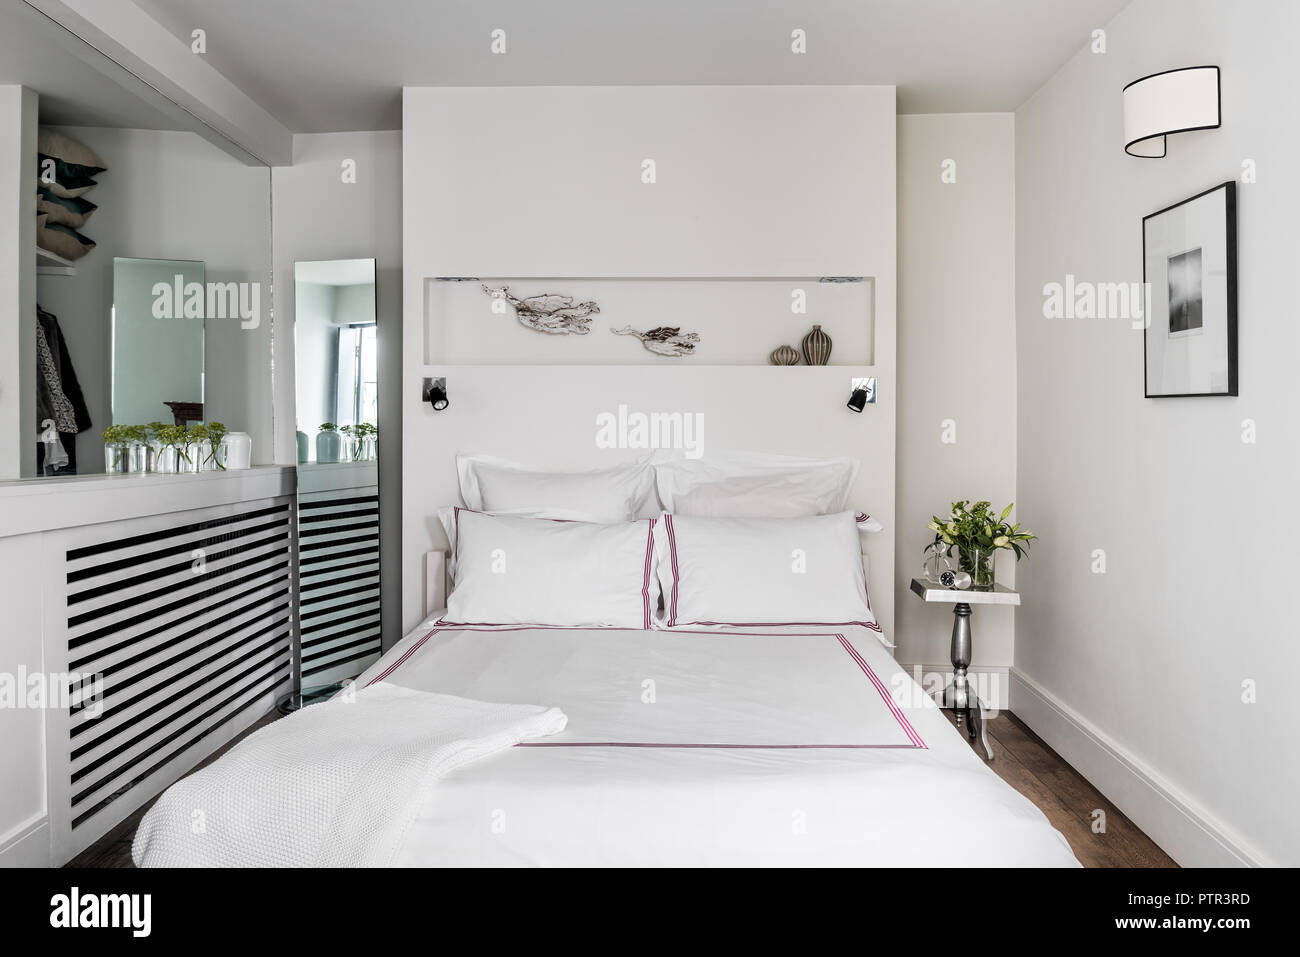 Length Of A Double Bed Full Length Mirror Stock Photos And Full Length Mirror Stock